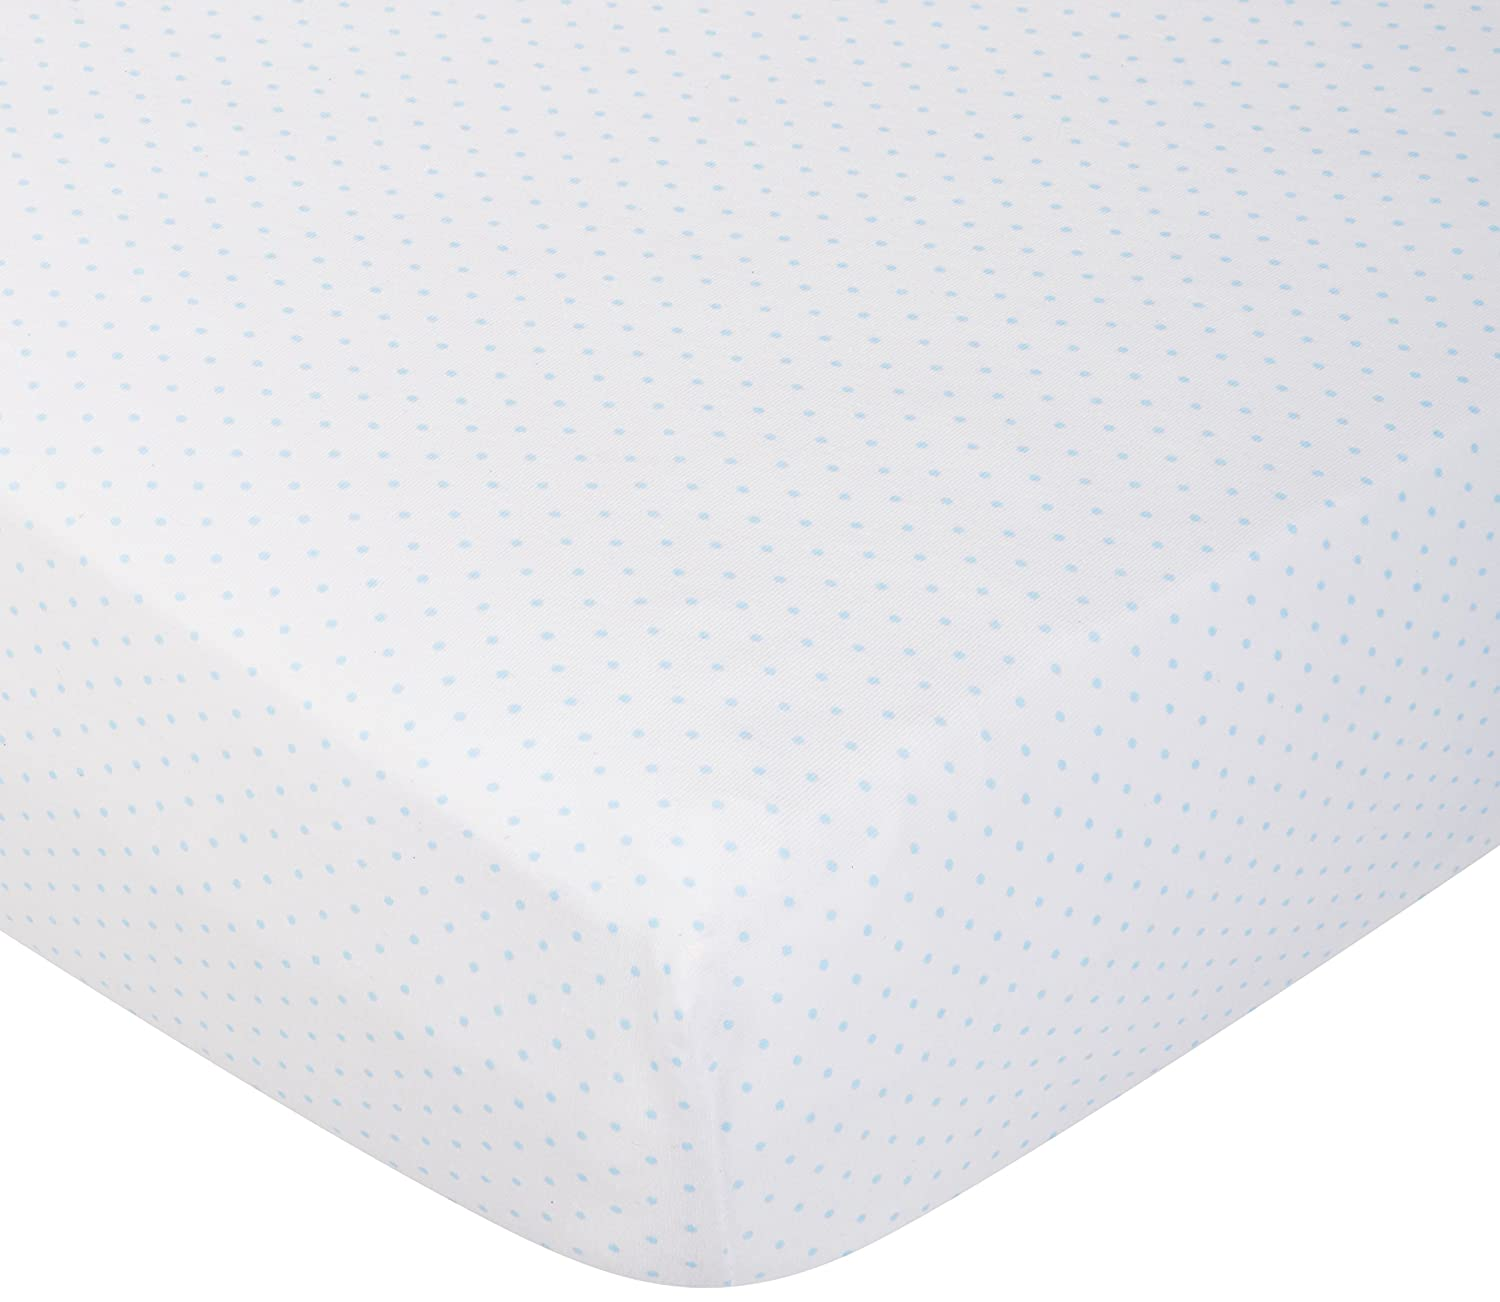 SheetWorld Fitted Portable / Mini Crib Sheet - Grey Pindot Jersey Knit - Made In USA PC-GD